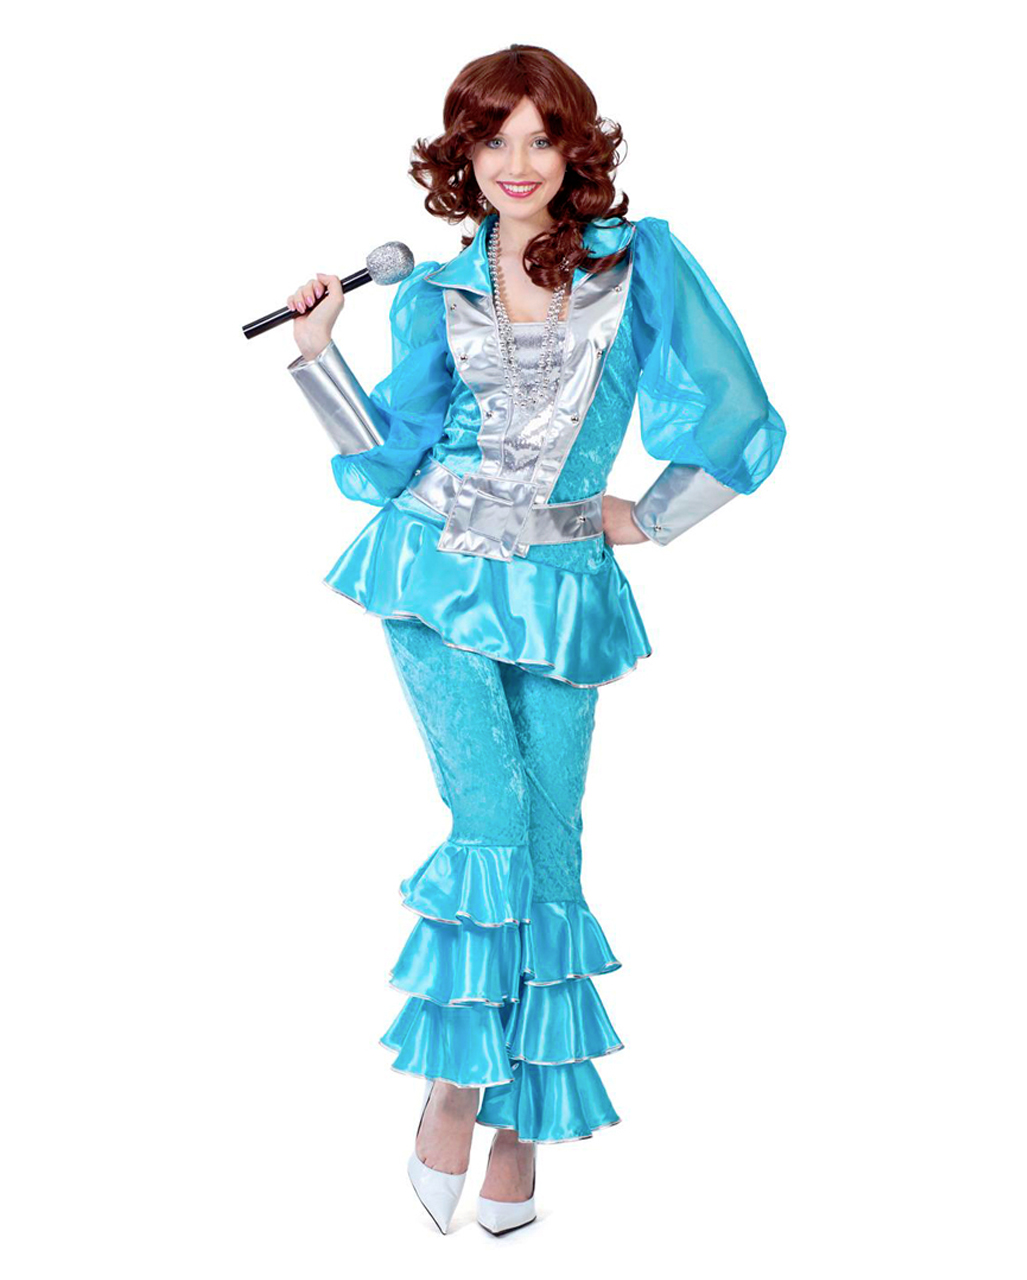 Mama Mia 70s Costume Deluxe Turquoise For Theme Parties Horror